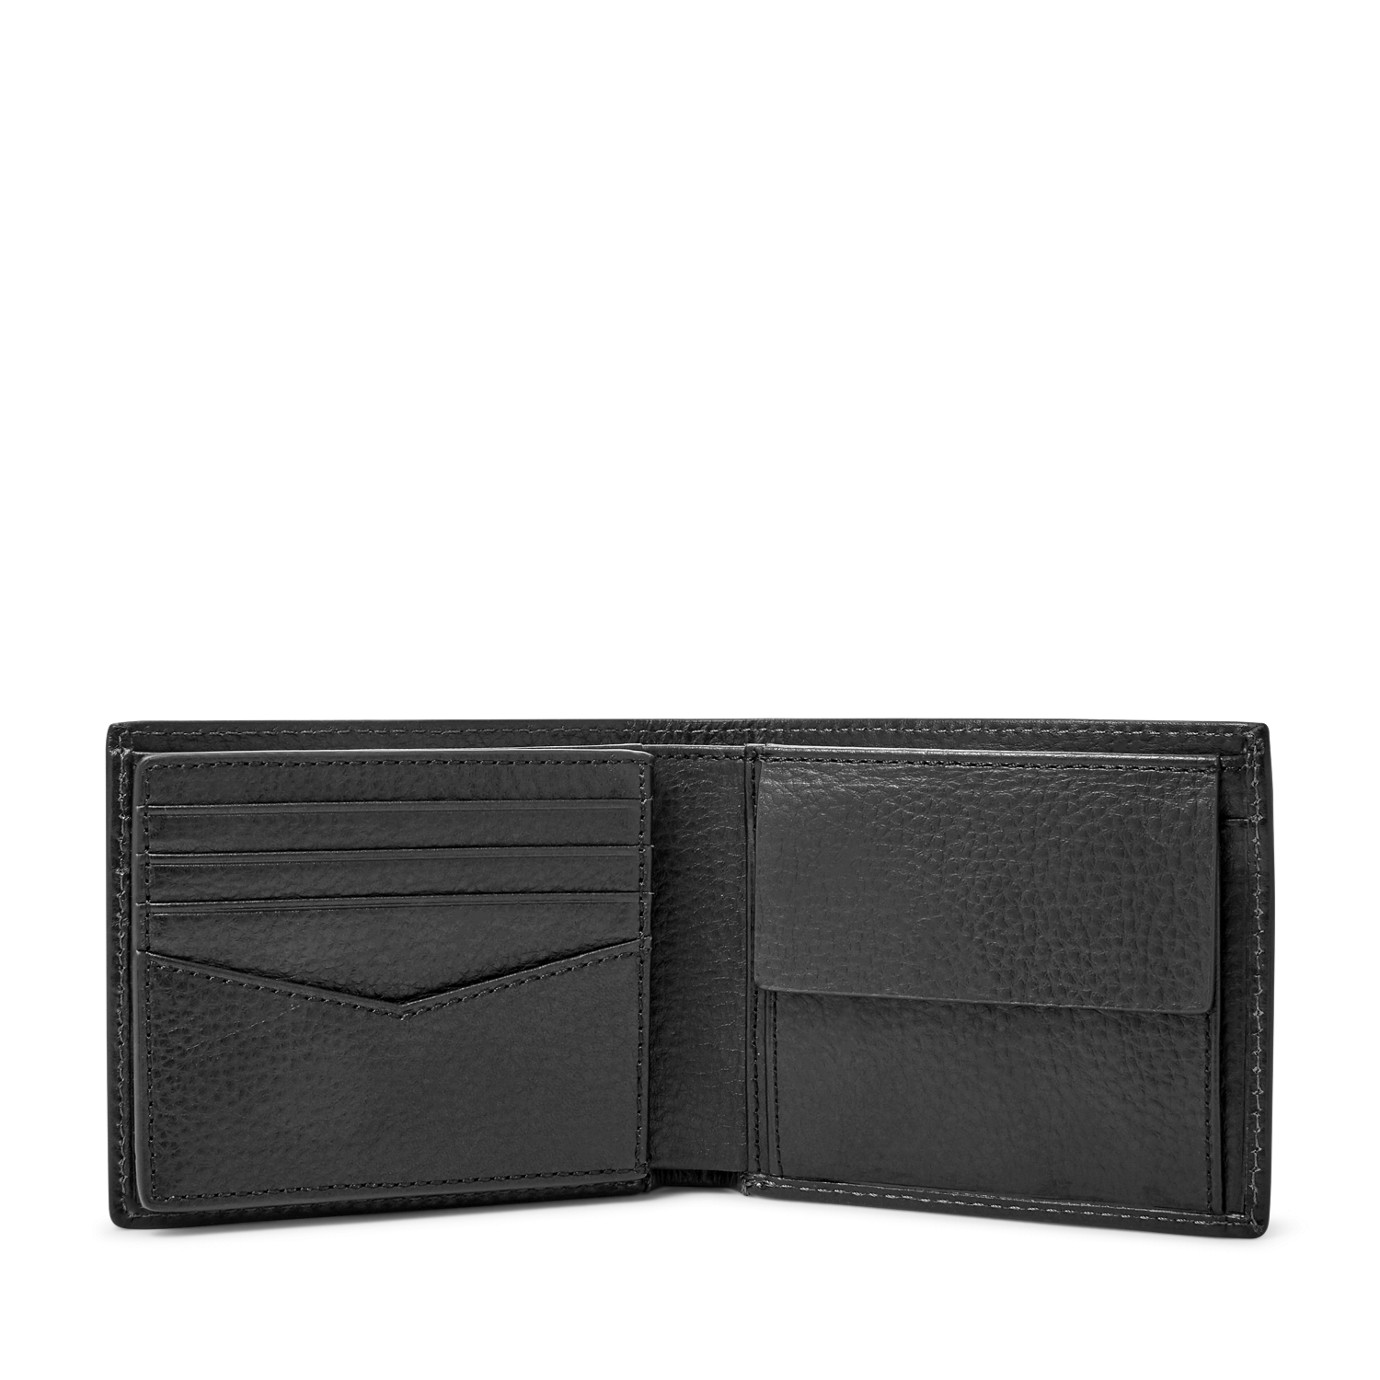 Richard RFID Large Coin Pocket Bifold